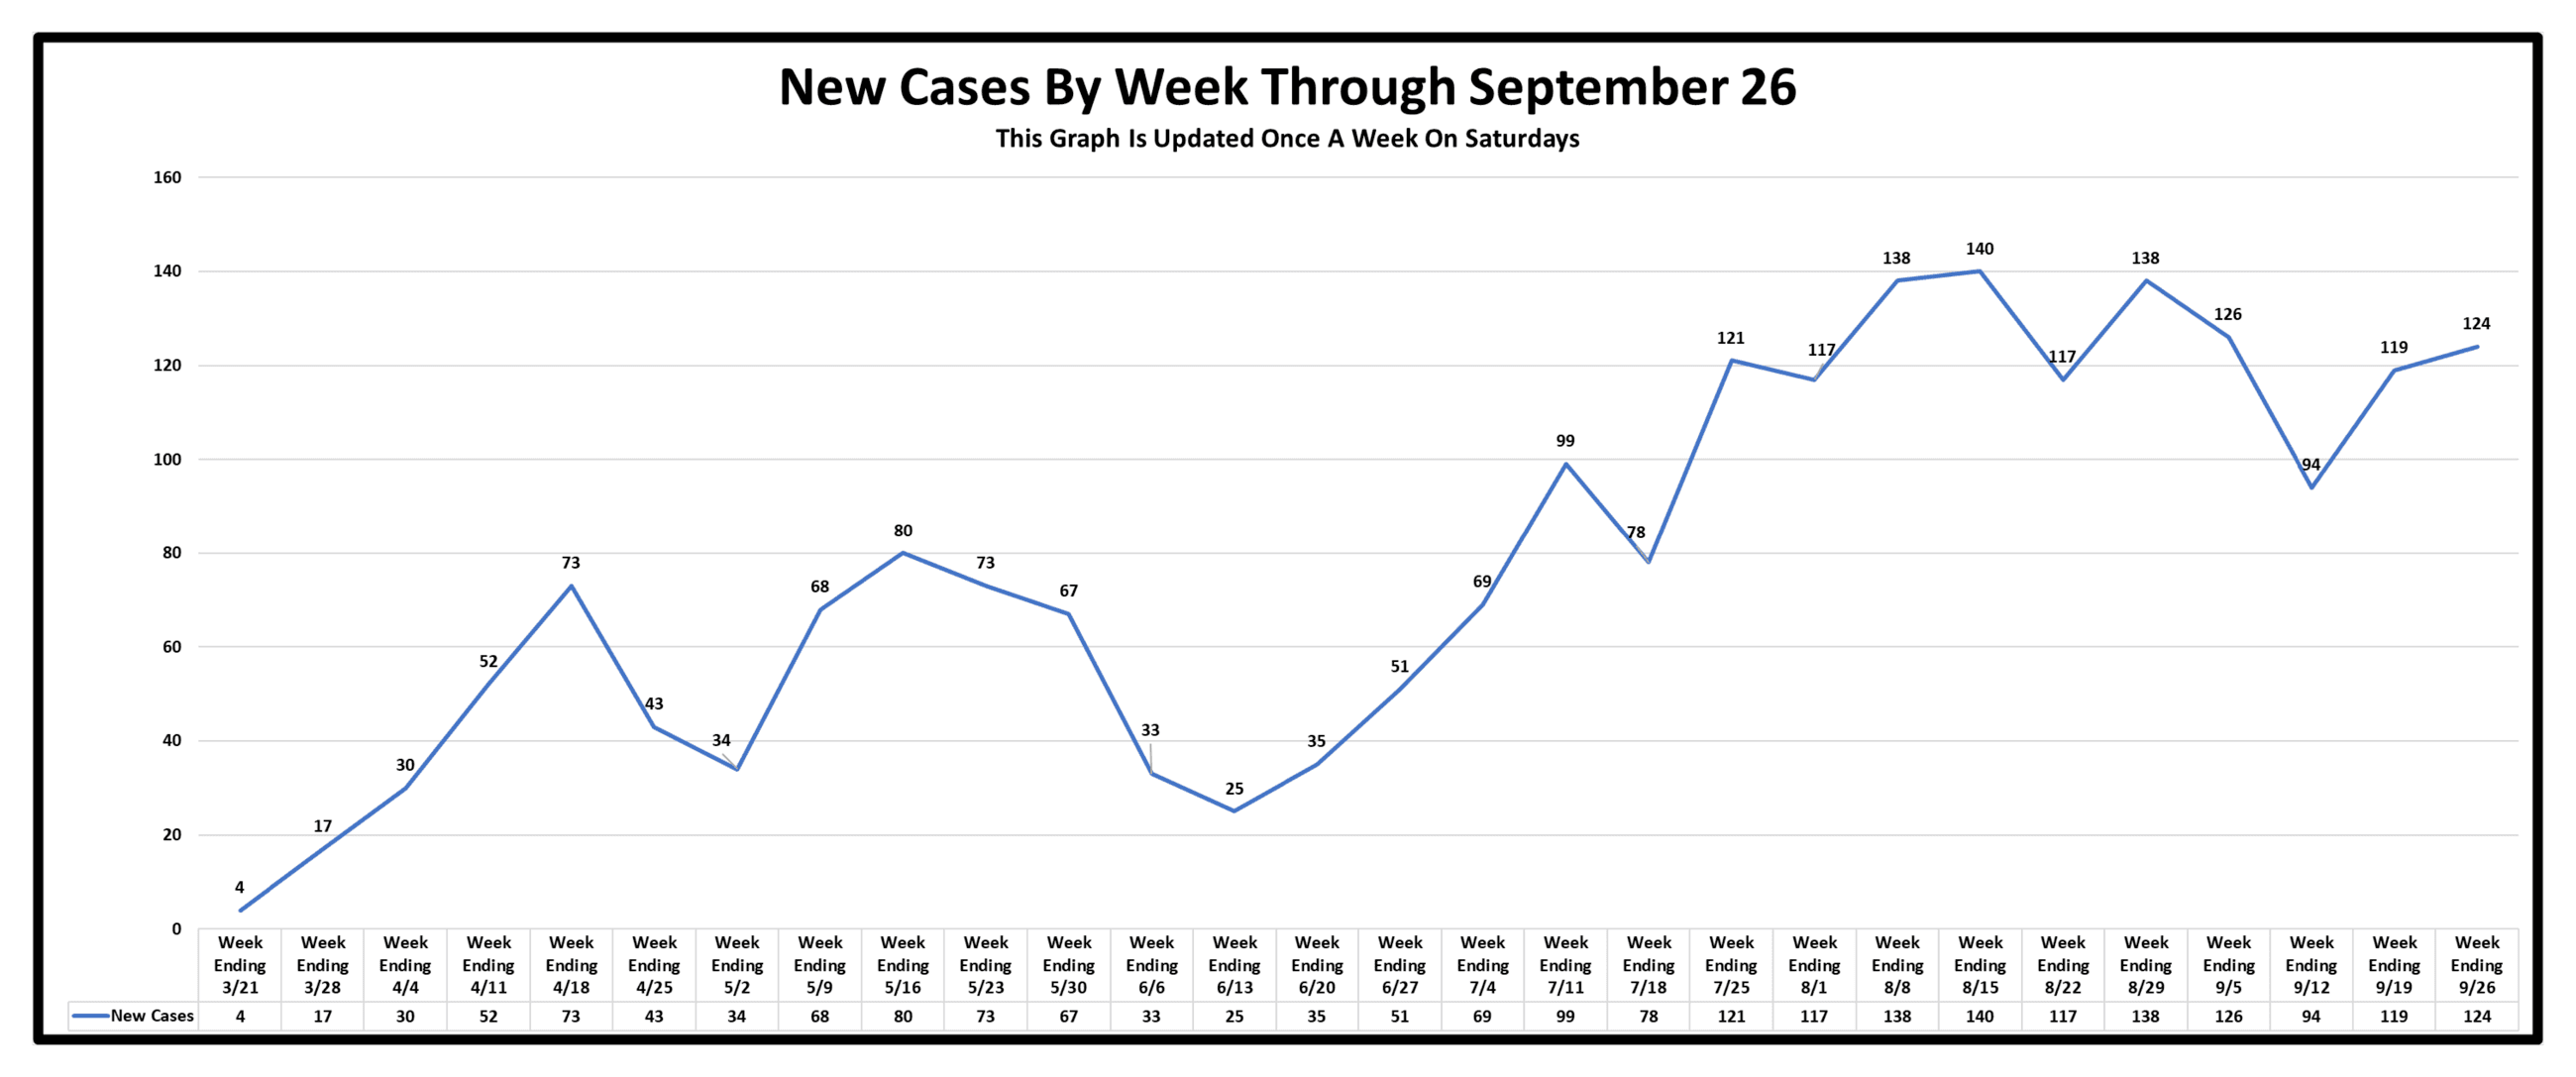 New Cases By Week As Of September 26